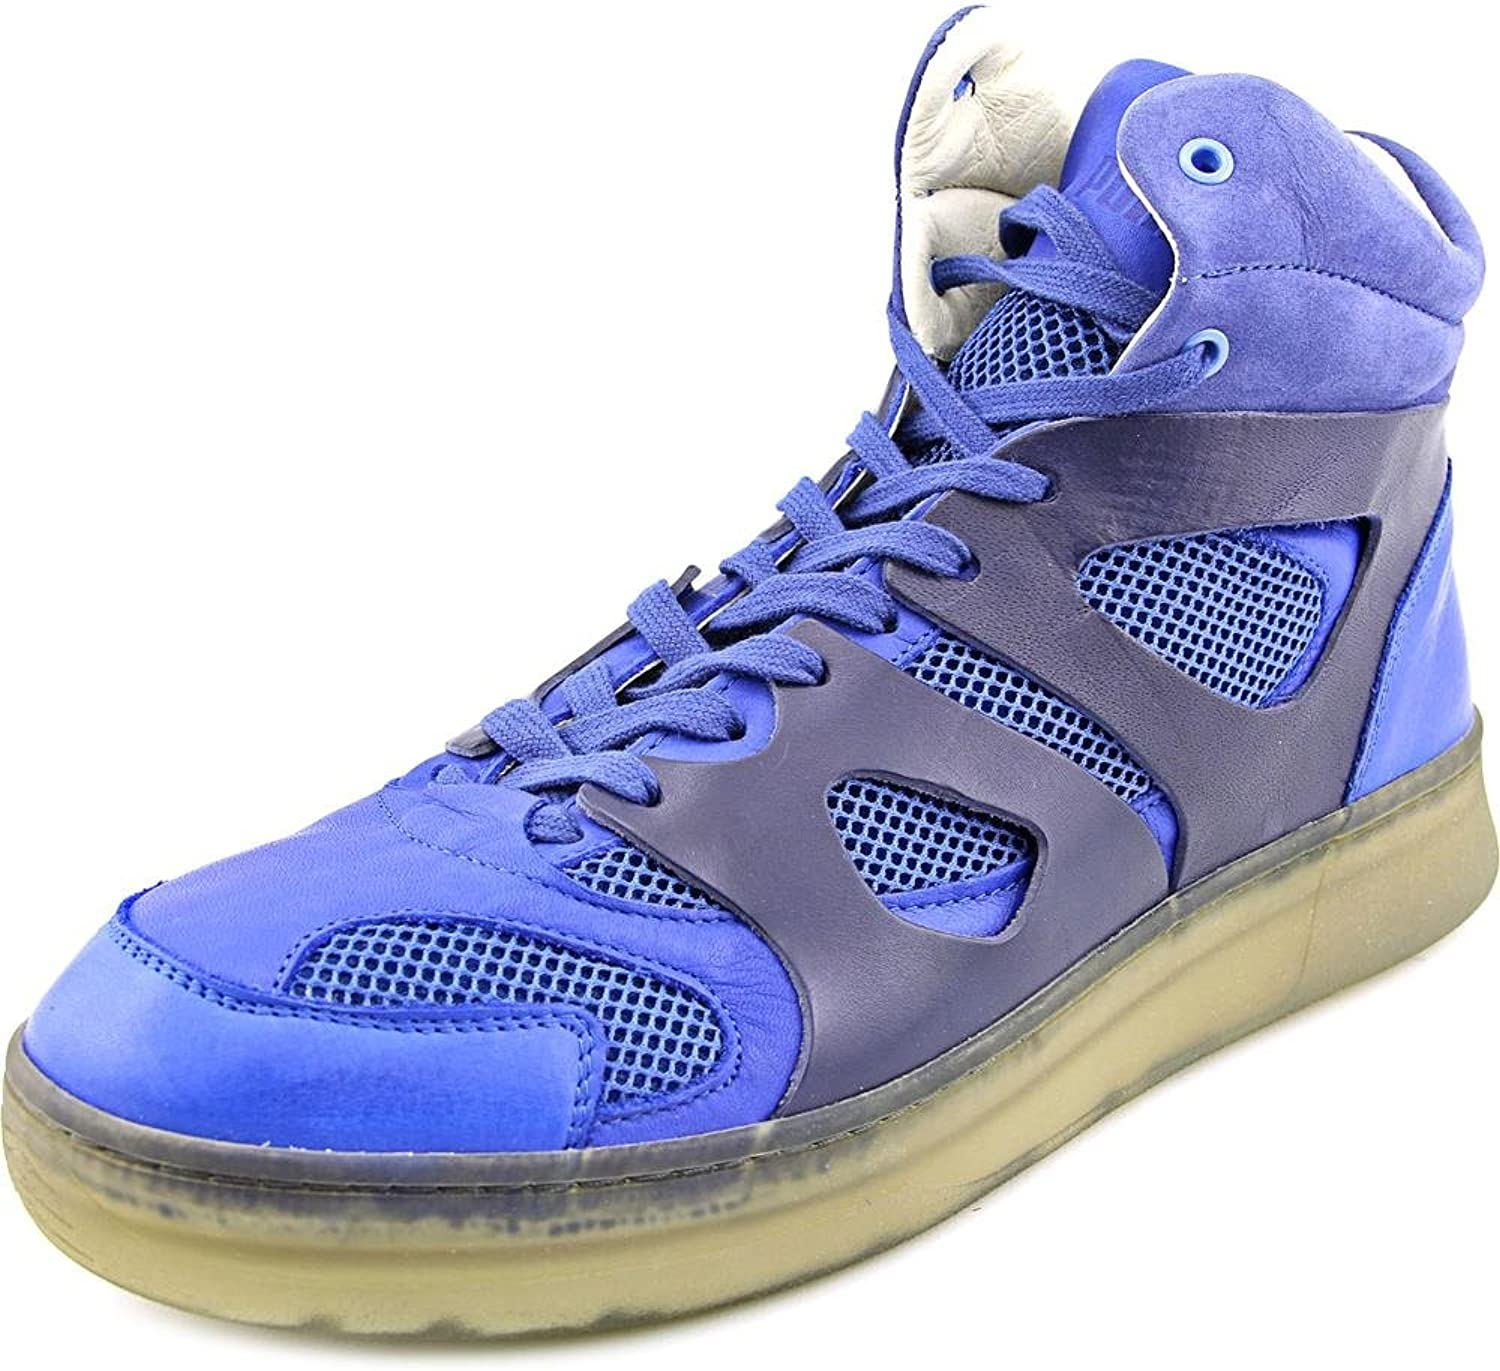 PUMA Mens MCQ Move Mid Alexander McQueen bluee Leather Athletic Sneakers